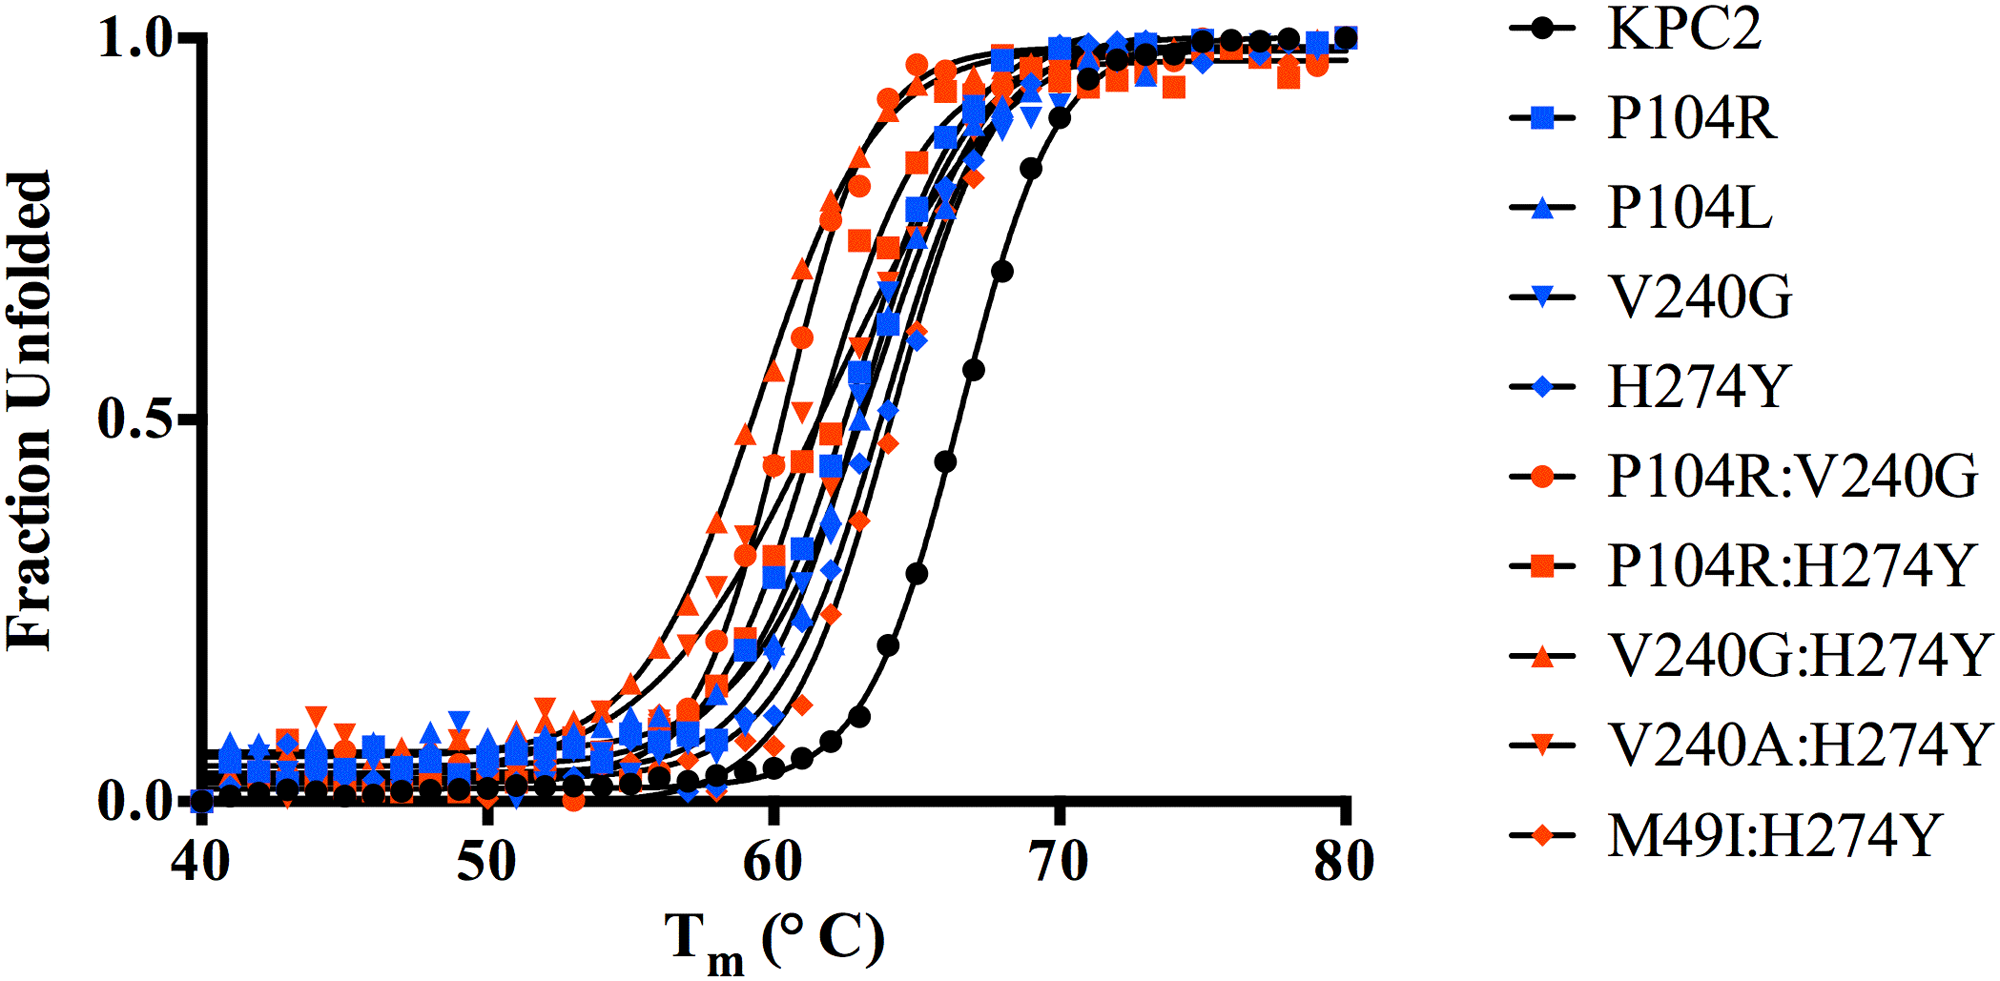 Thermal unfolding curves of KPC variants as measured by circular dichroism at 222 nm.